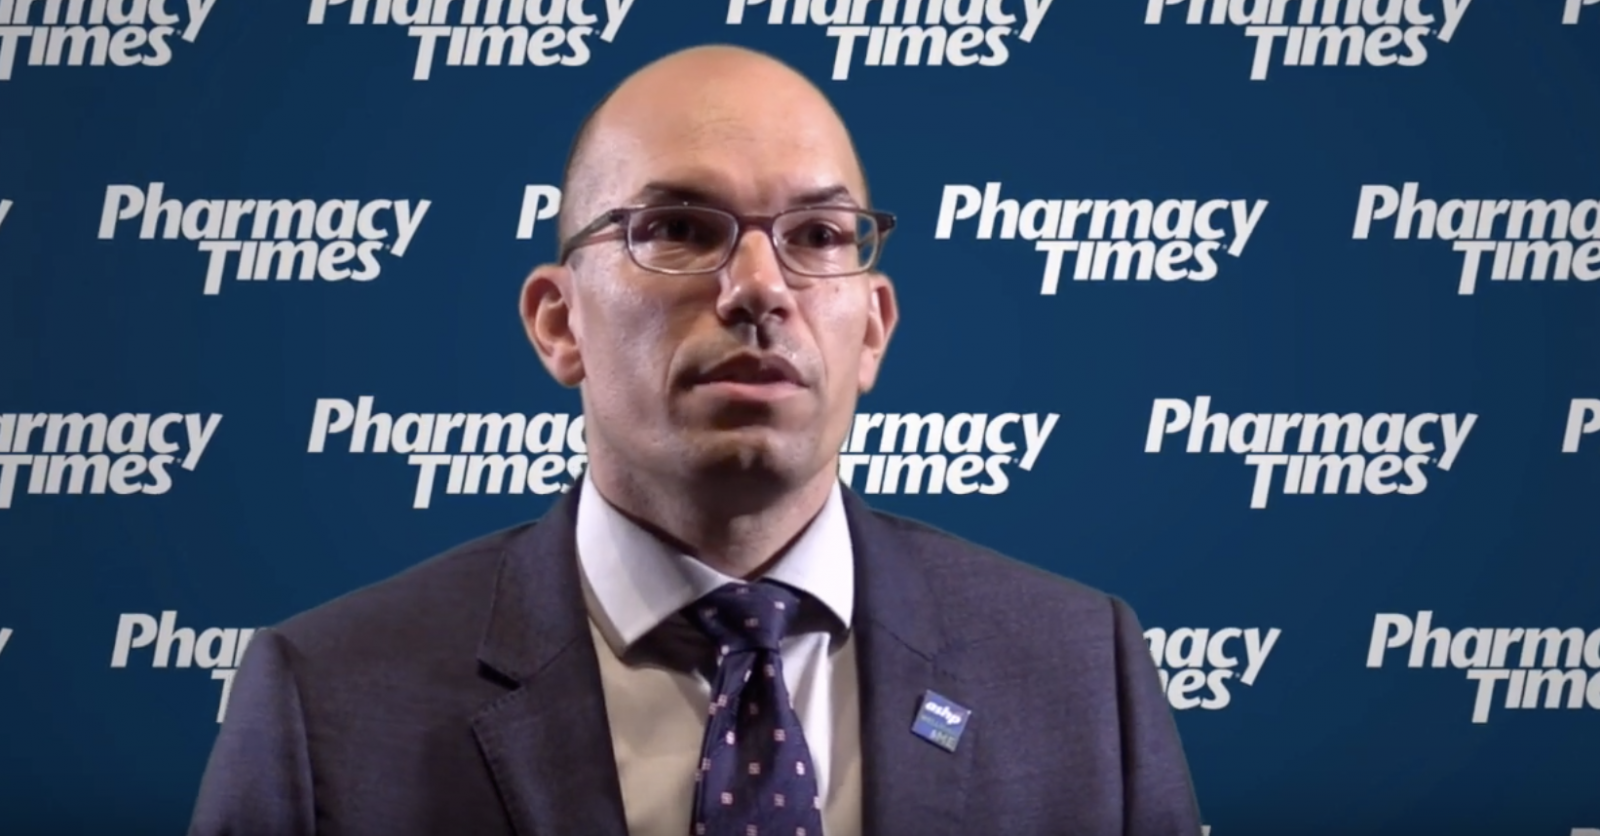 Pharmacists Play Key Role in Advocacy